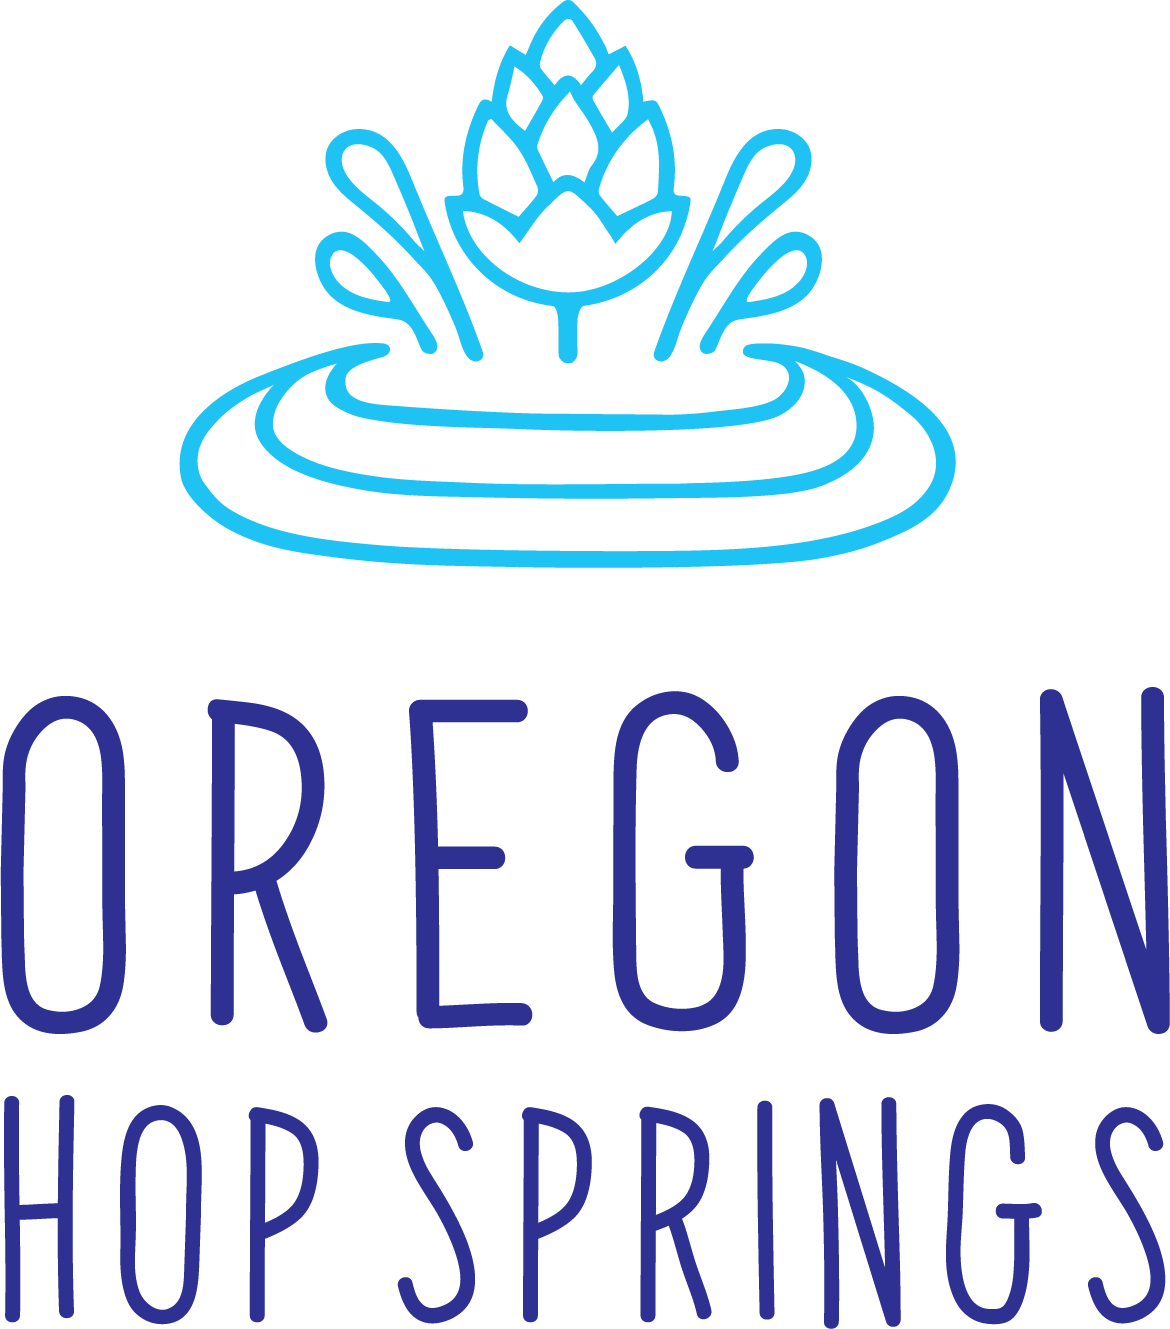 Oregon Hop Springs Logo